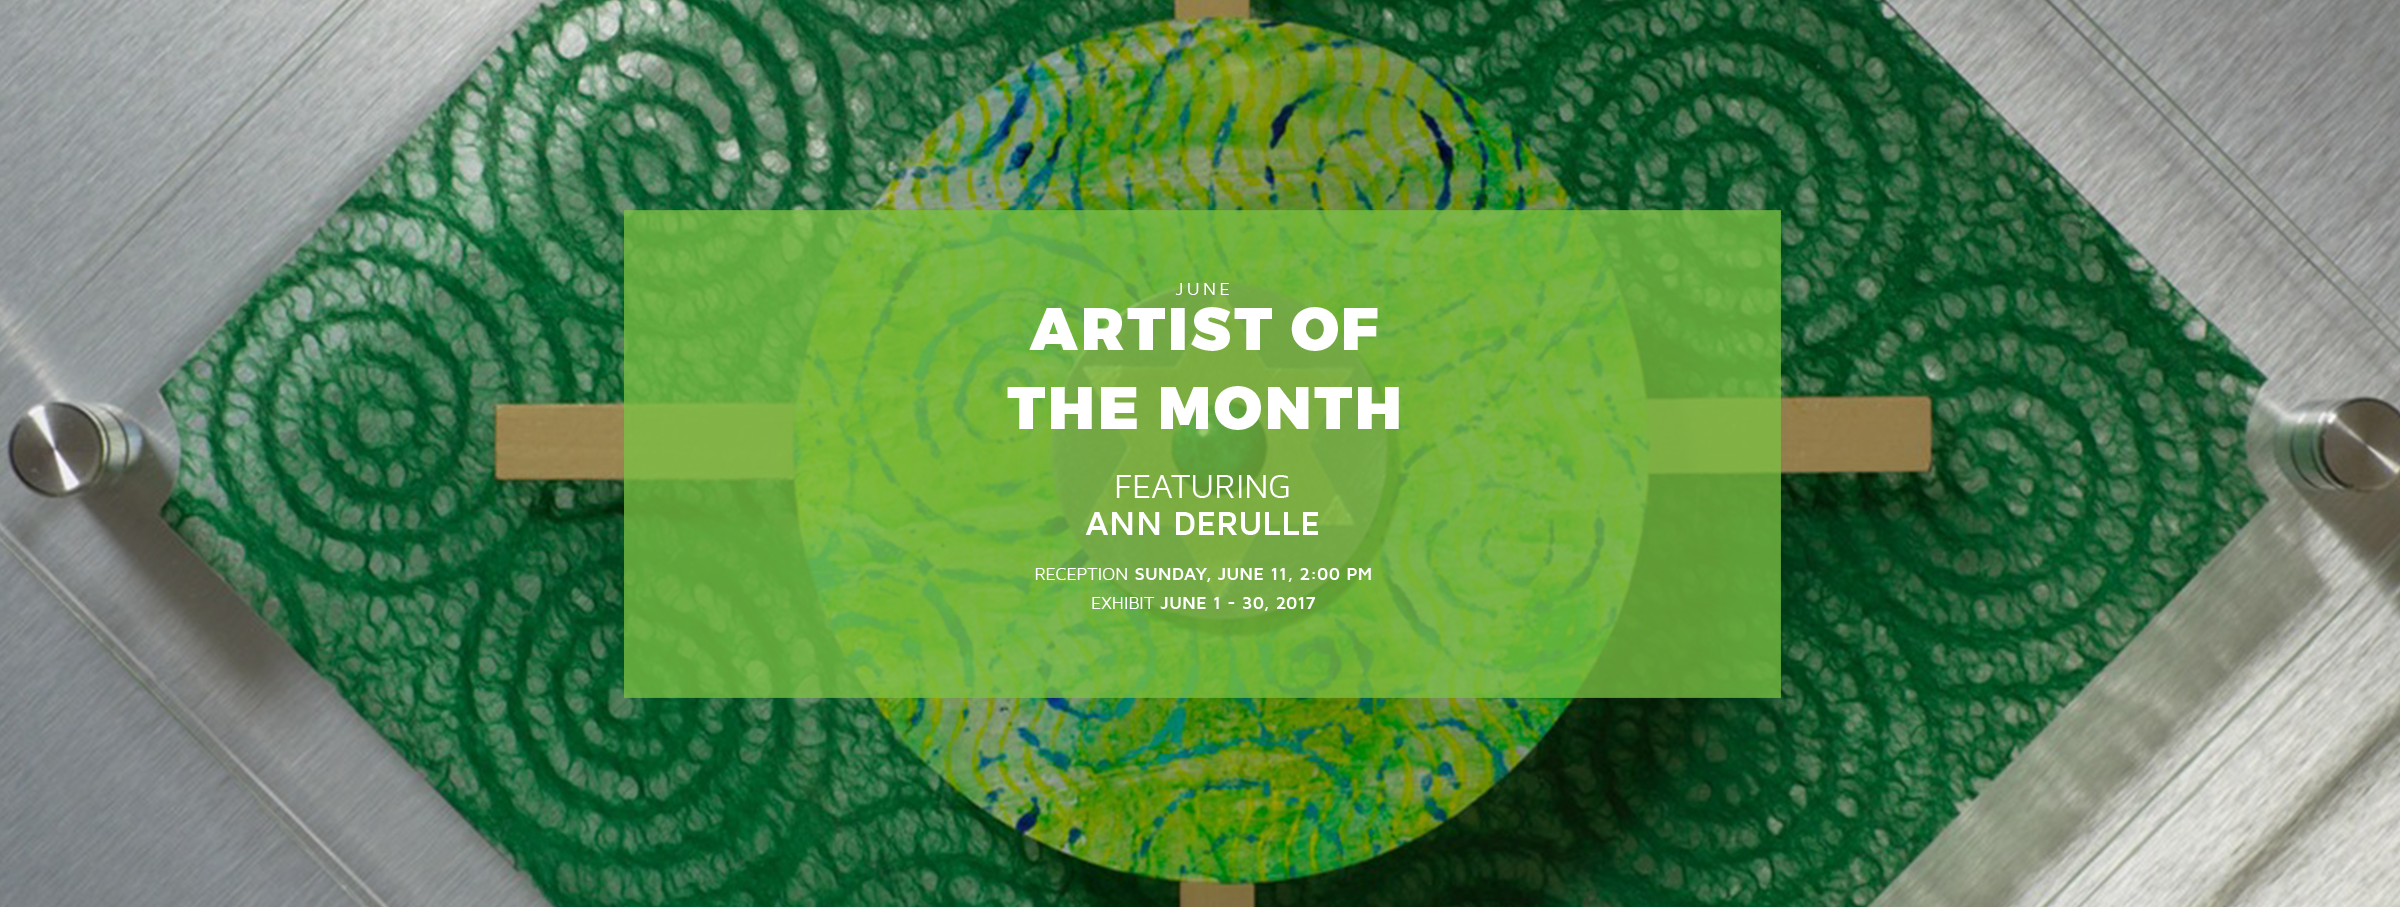 Free Things to do in Dallas: Ann DeRulle Exhibit at the Museum of Geometric and MADI Art